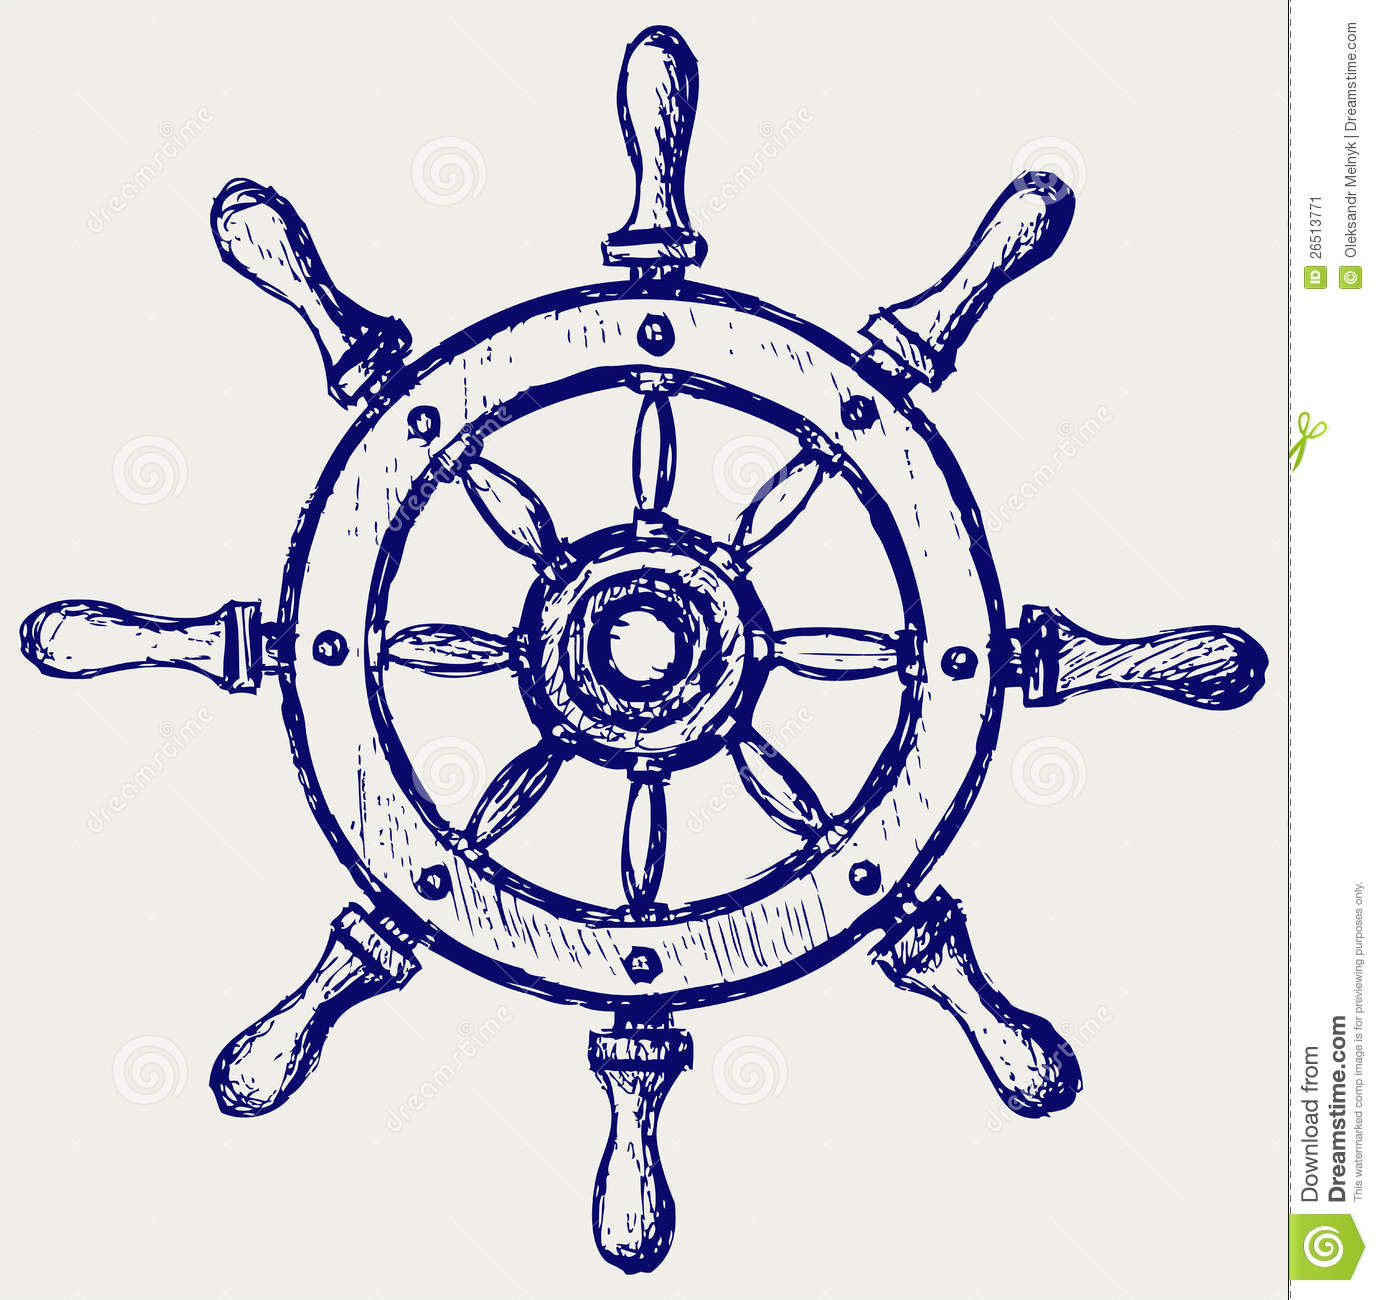 Floating clipart ship wheel Image 26513771 Marine Stock Wooden